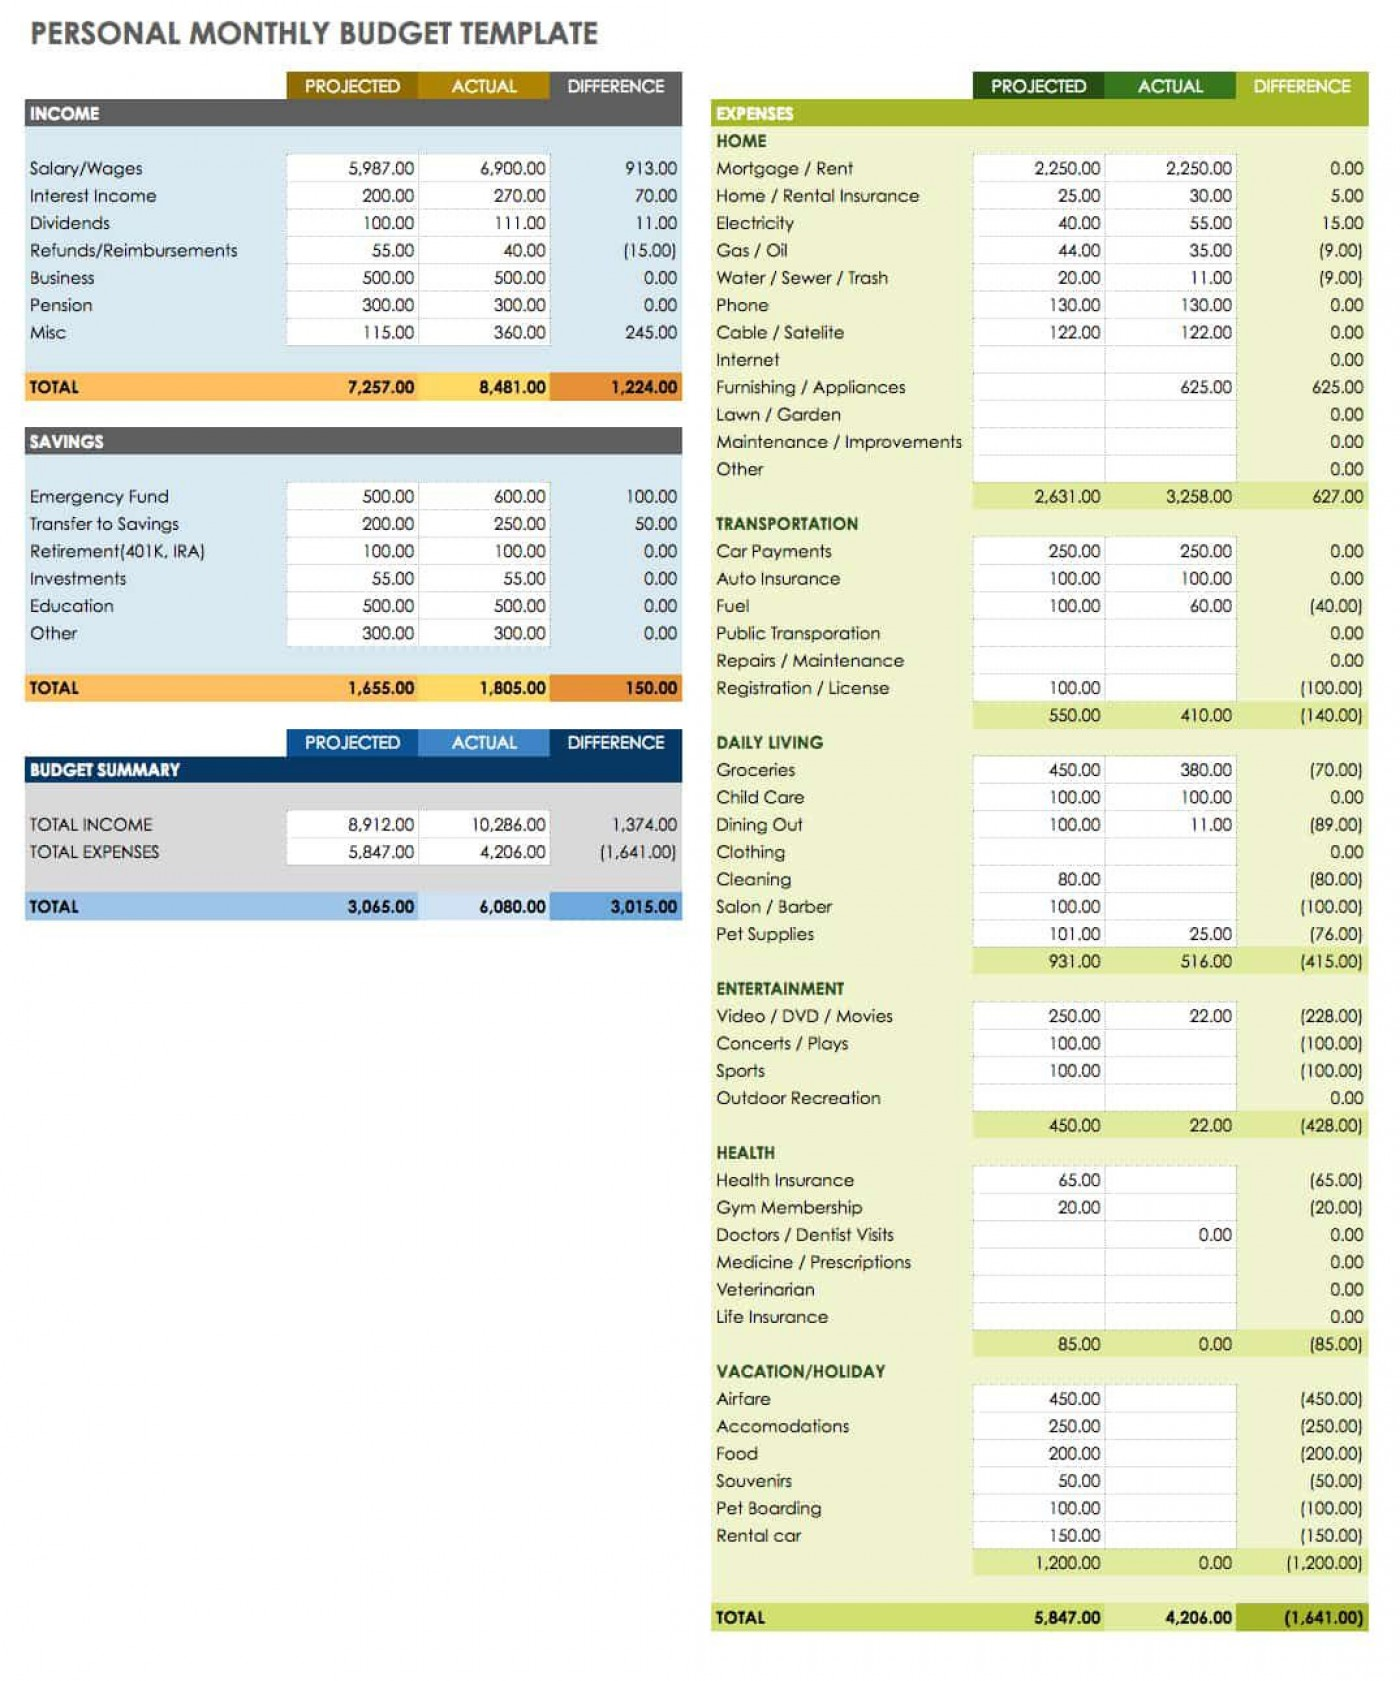 004 Rare Home Renovation Budget Template Excel Free Download Concept 1400